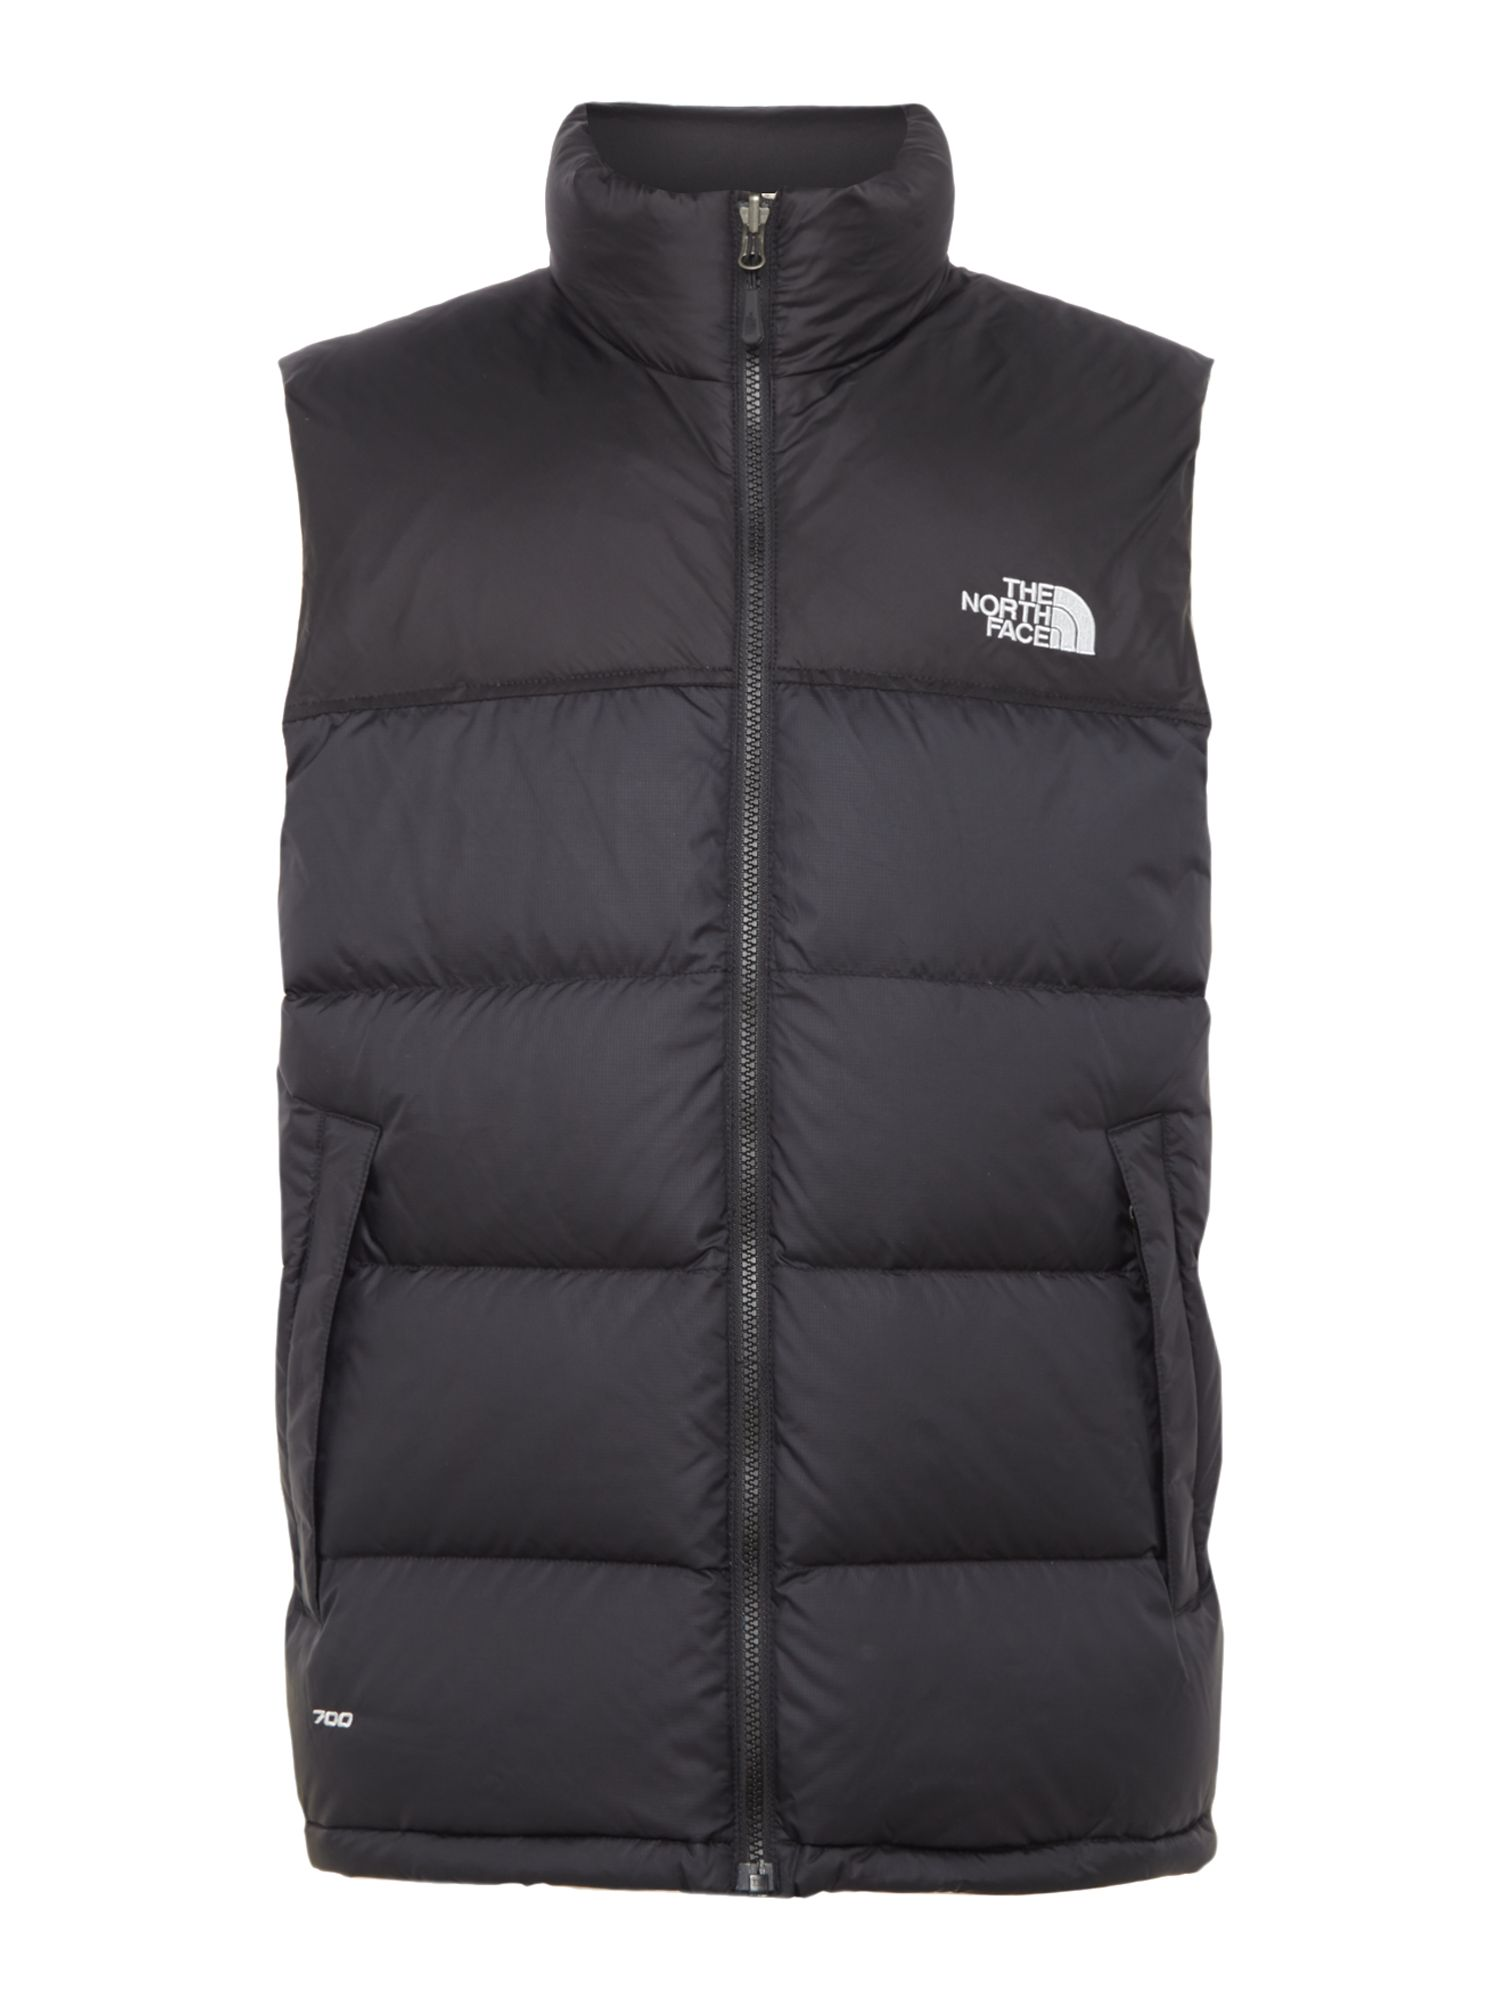 Mens The North Face Nuptse vest Black